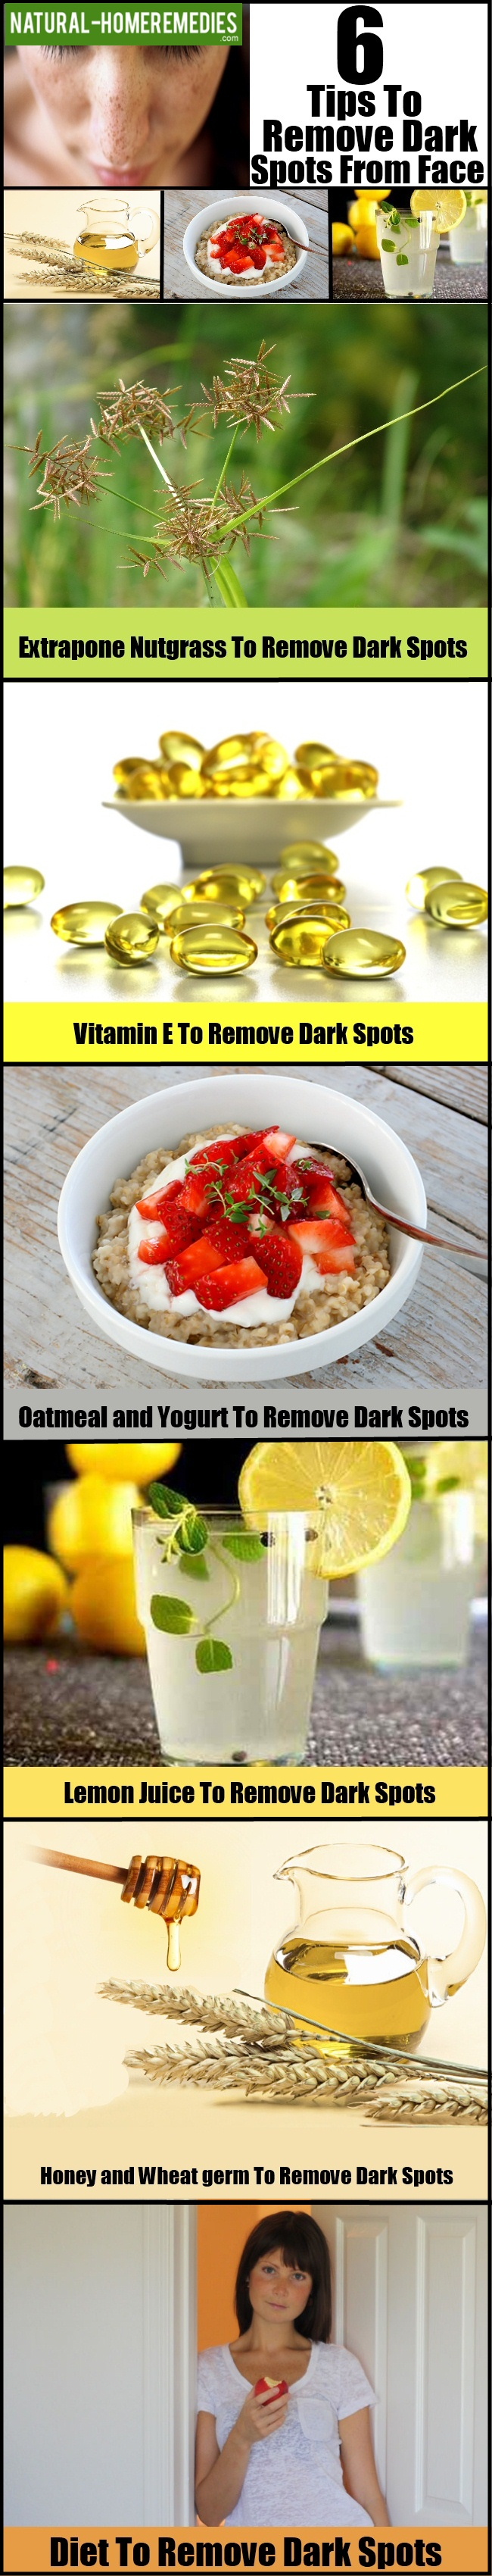 6 Tips To Remove Dark Spots From Face Naturally